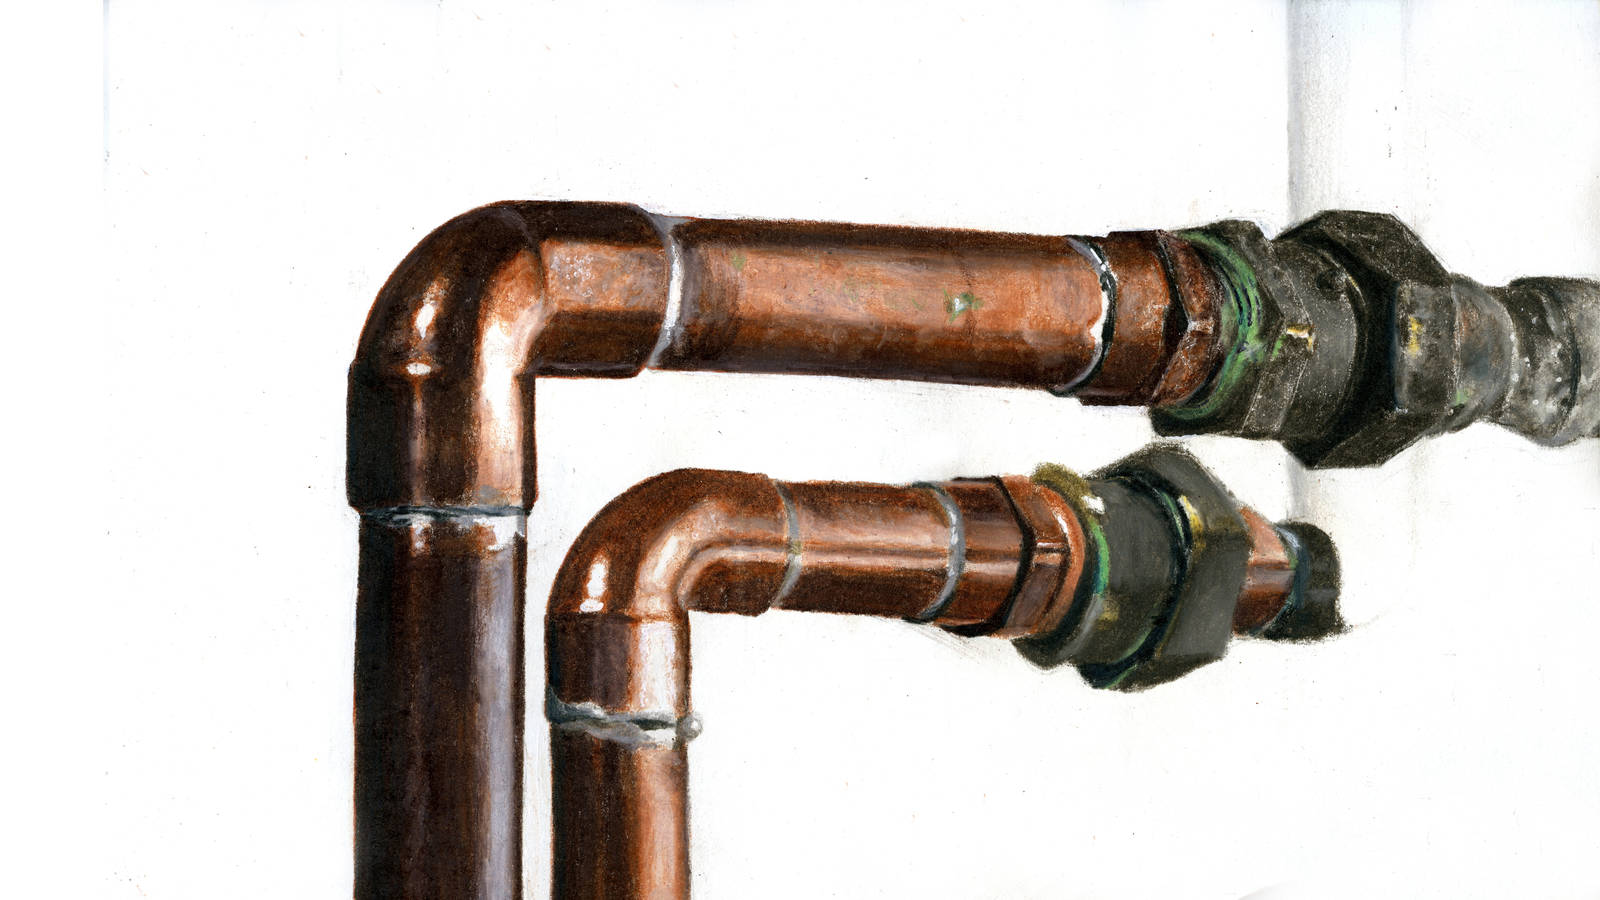 """<h3 style=""""text-align: center; padding: 50px;""""><span class=""""text-Intro-style"""">Copper pipes located in the caretaker's house at Weir Farm National Historic Site. Colored pencil on paper, 2016.</span></h3>"""